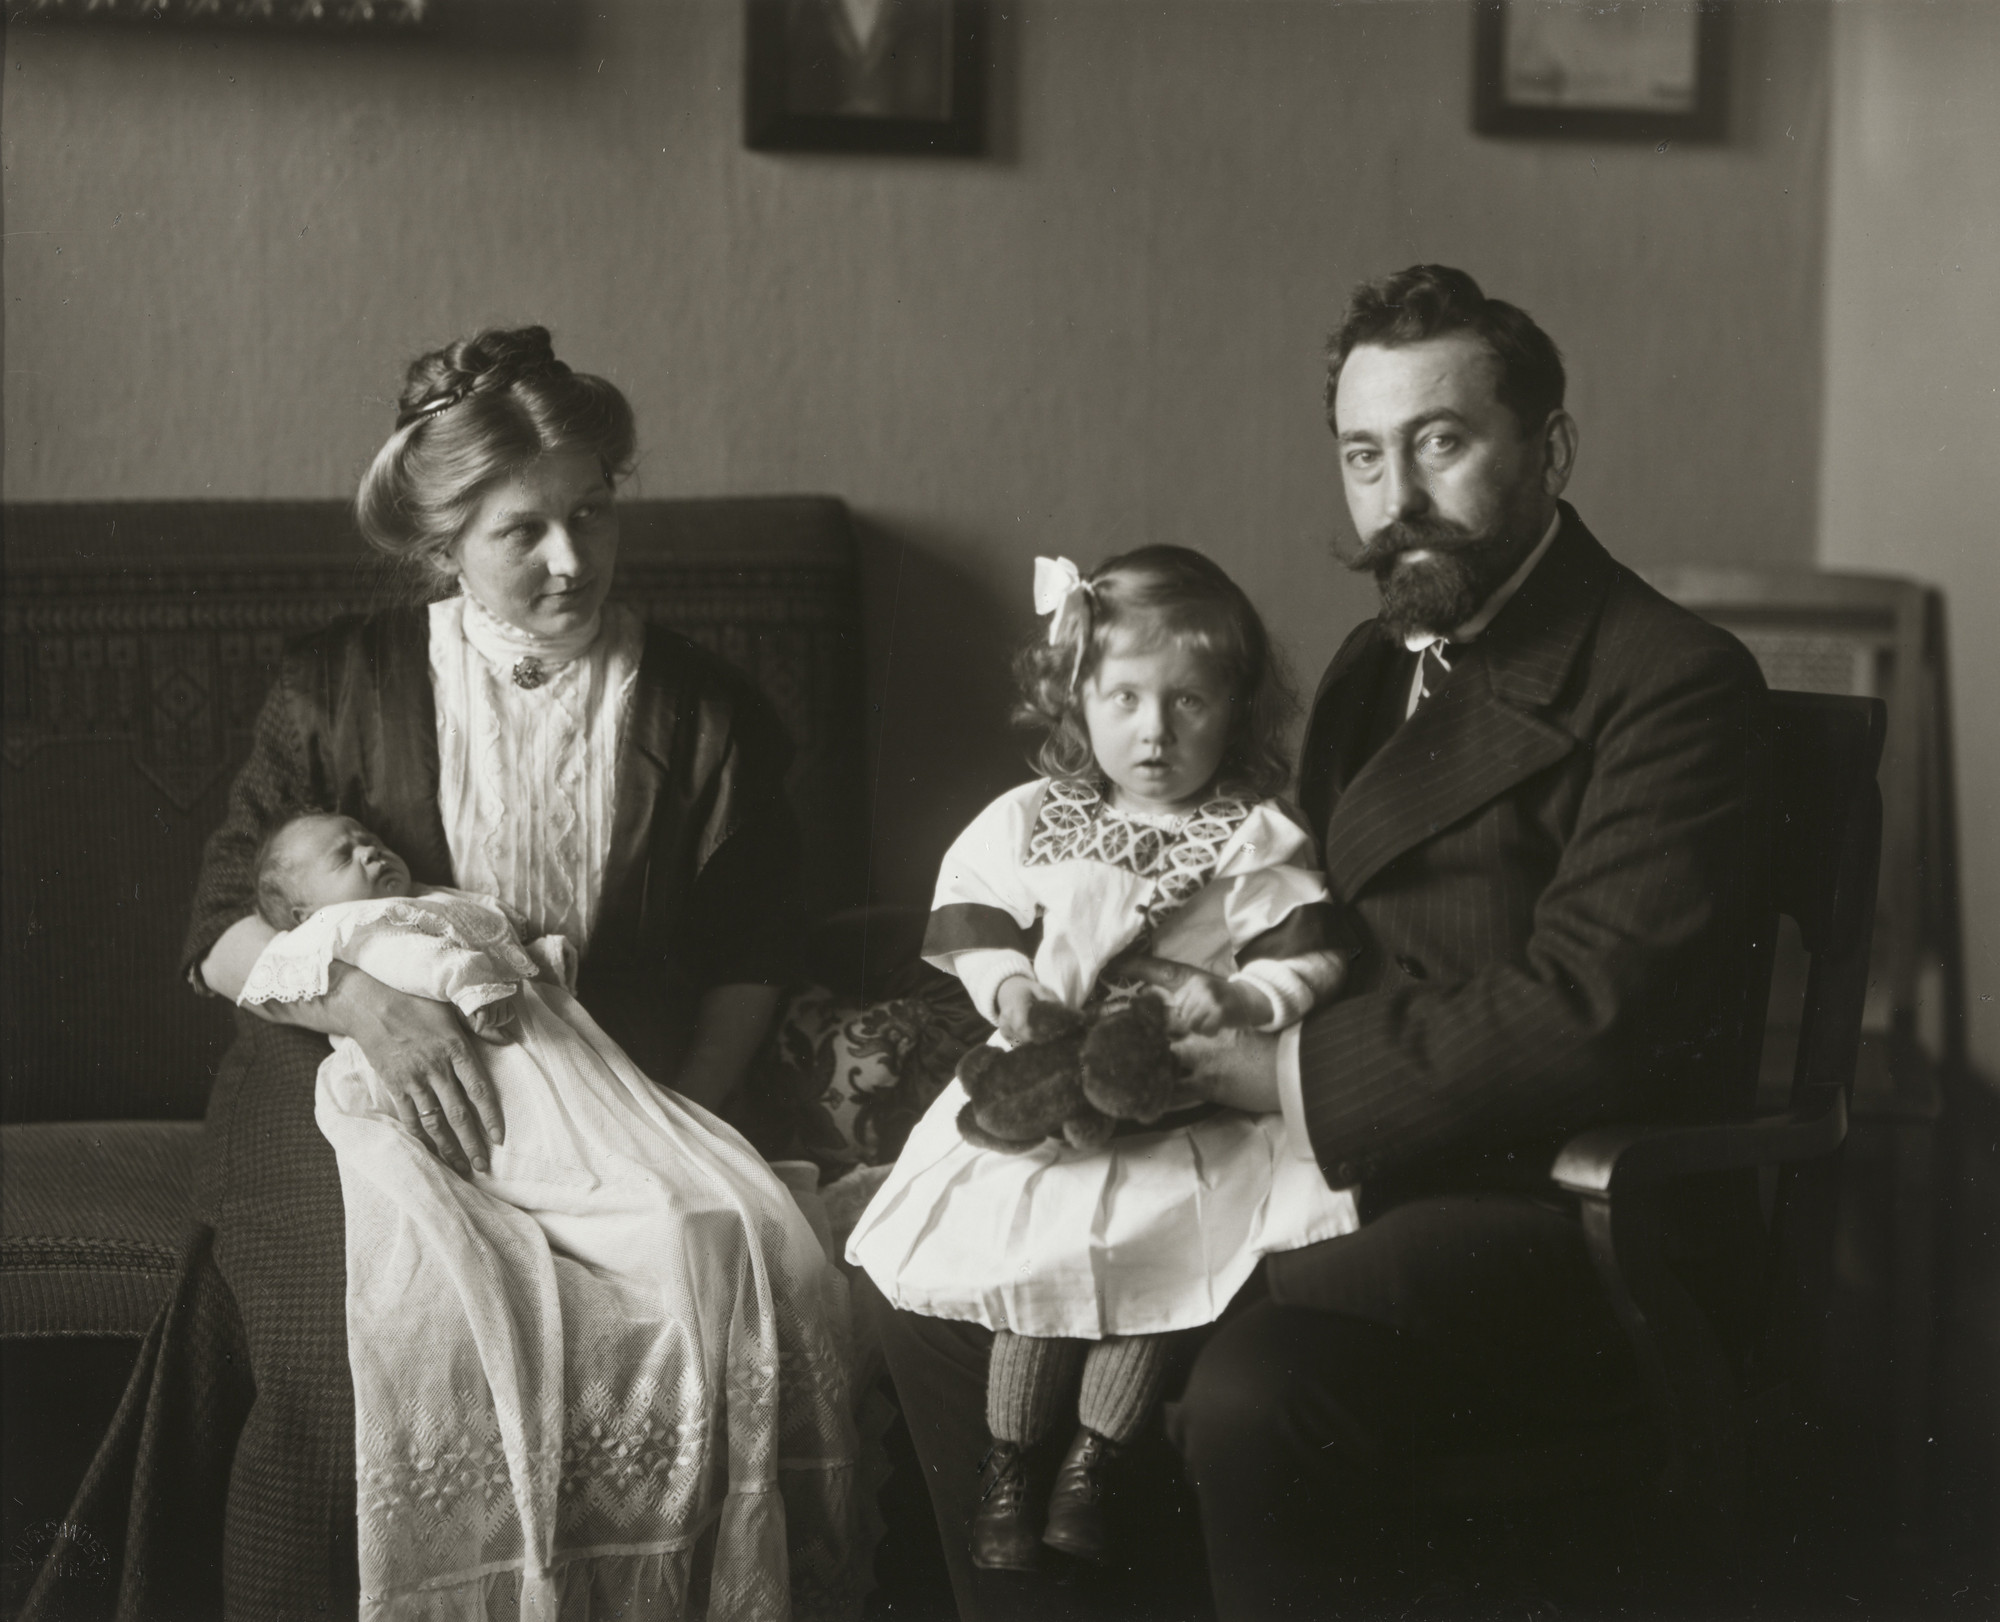 August Sander. Minister and Family. 1911-14